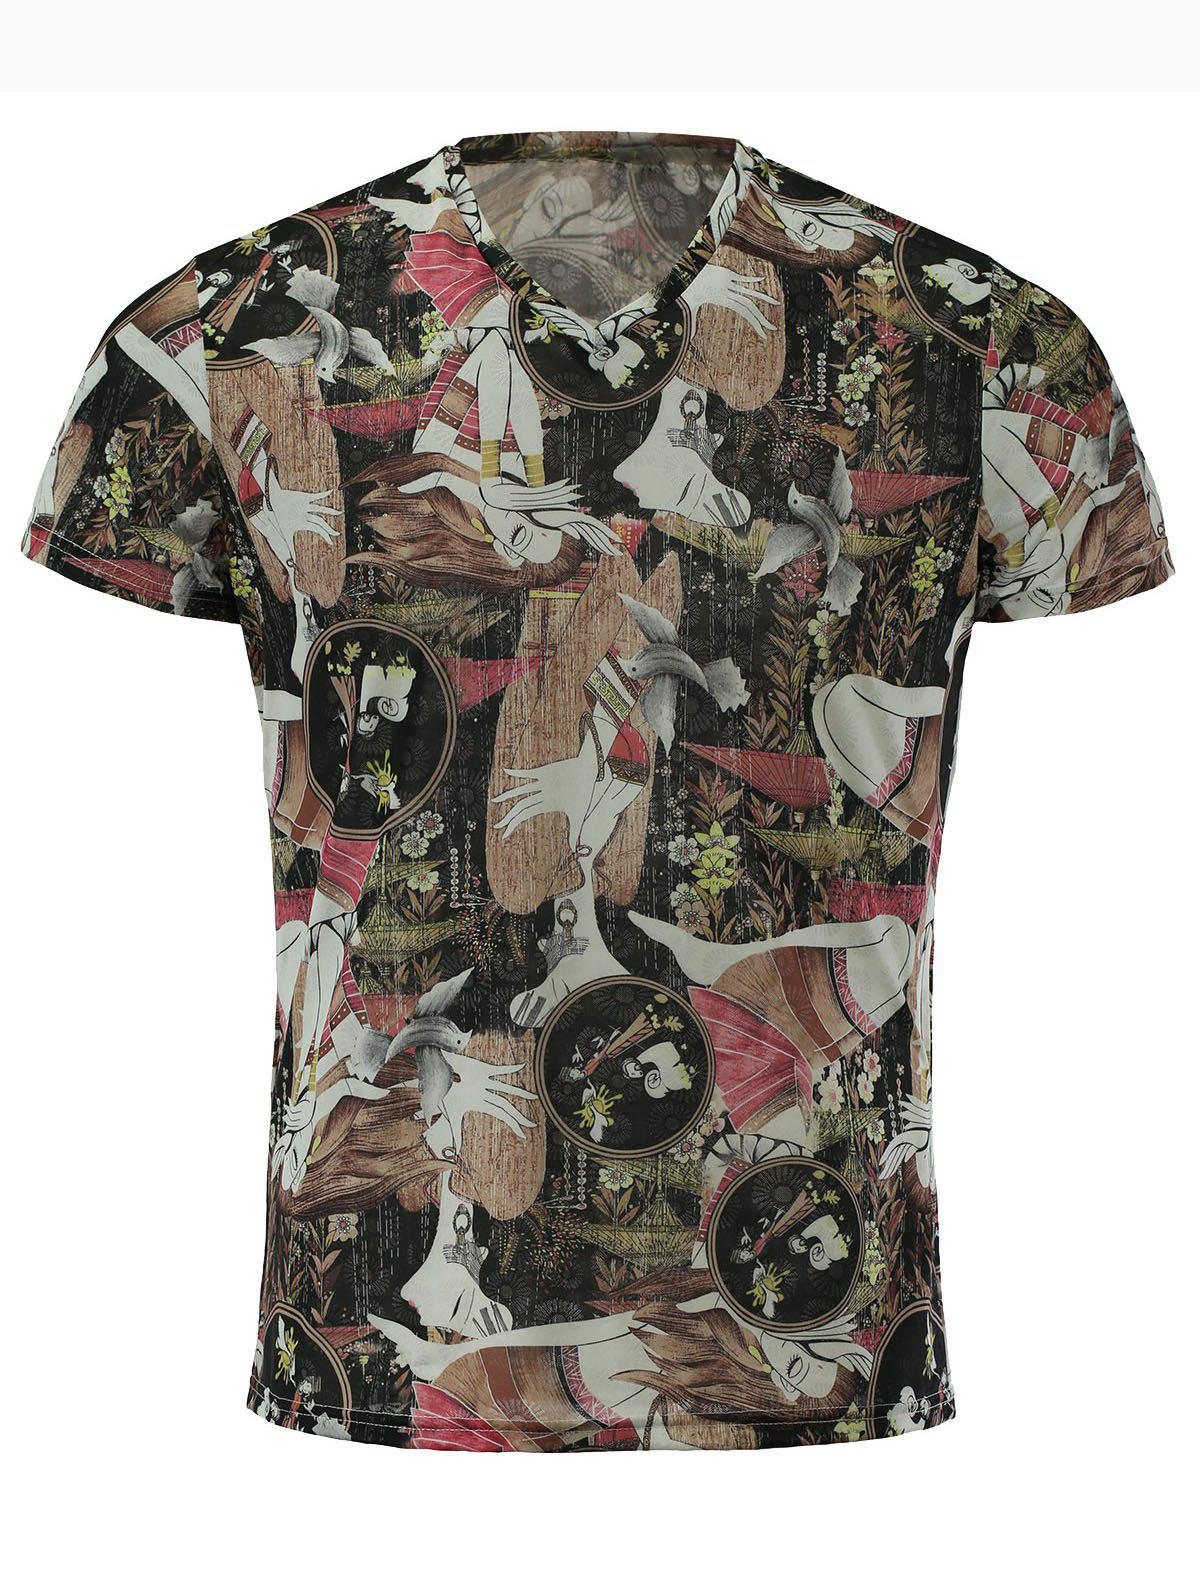 Men's Stylish Short Sleeves V-Neck Women Printed T-Shirt - COLORMIX M